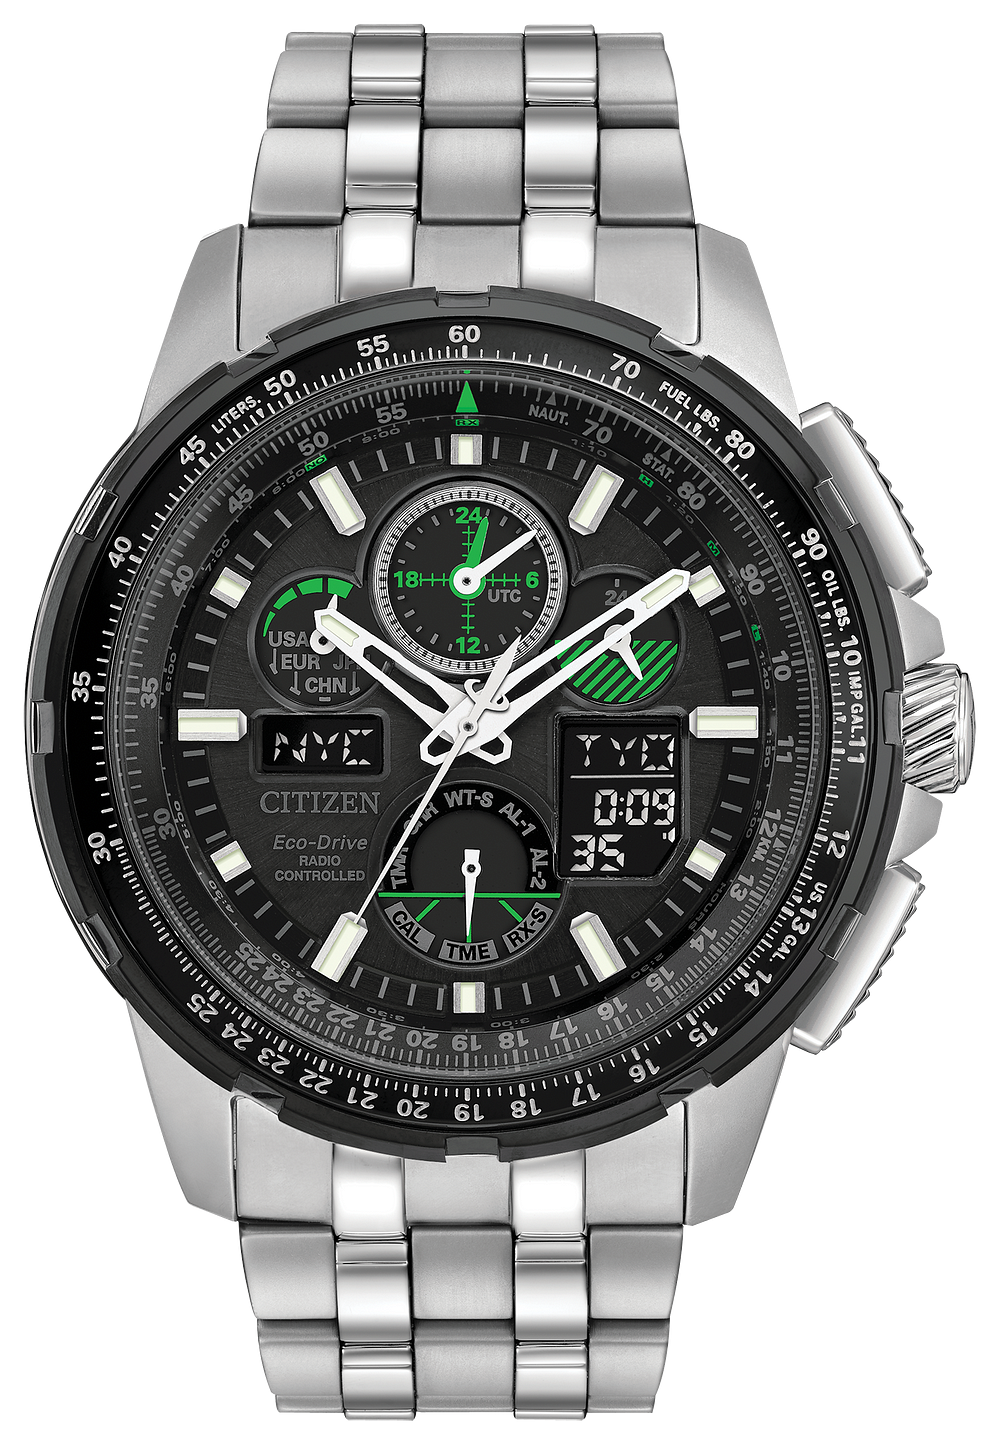 promaster skyhawk a t men s eco drive chronograph black watch rh citizenwatch com citizen eco drive wr 200 manual citizen eco drive promaster wr 200 manual